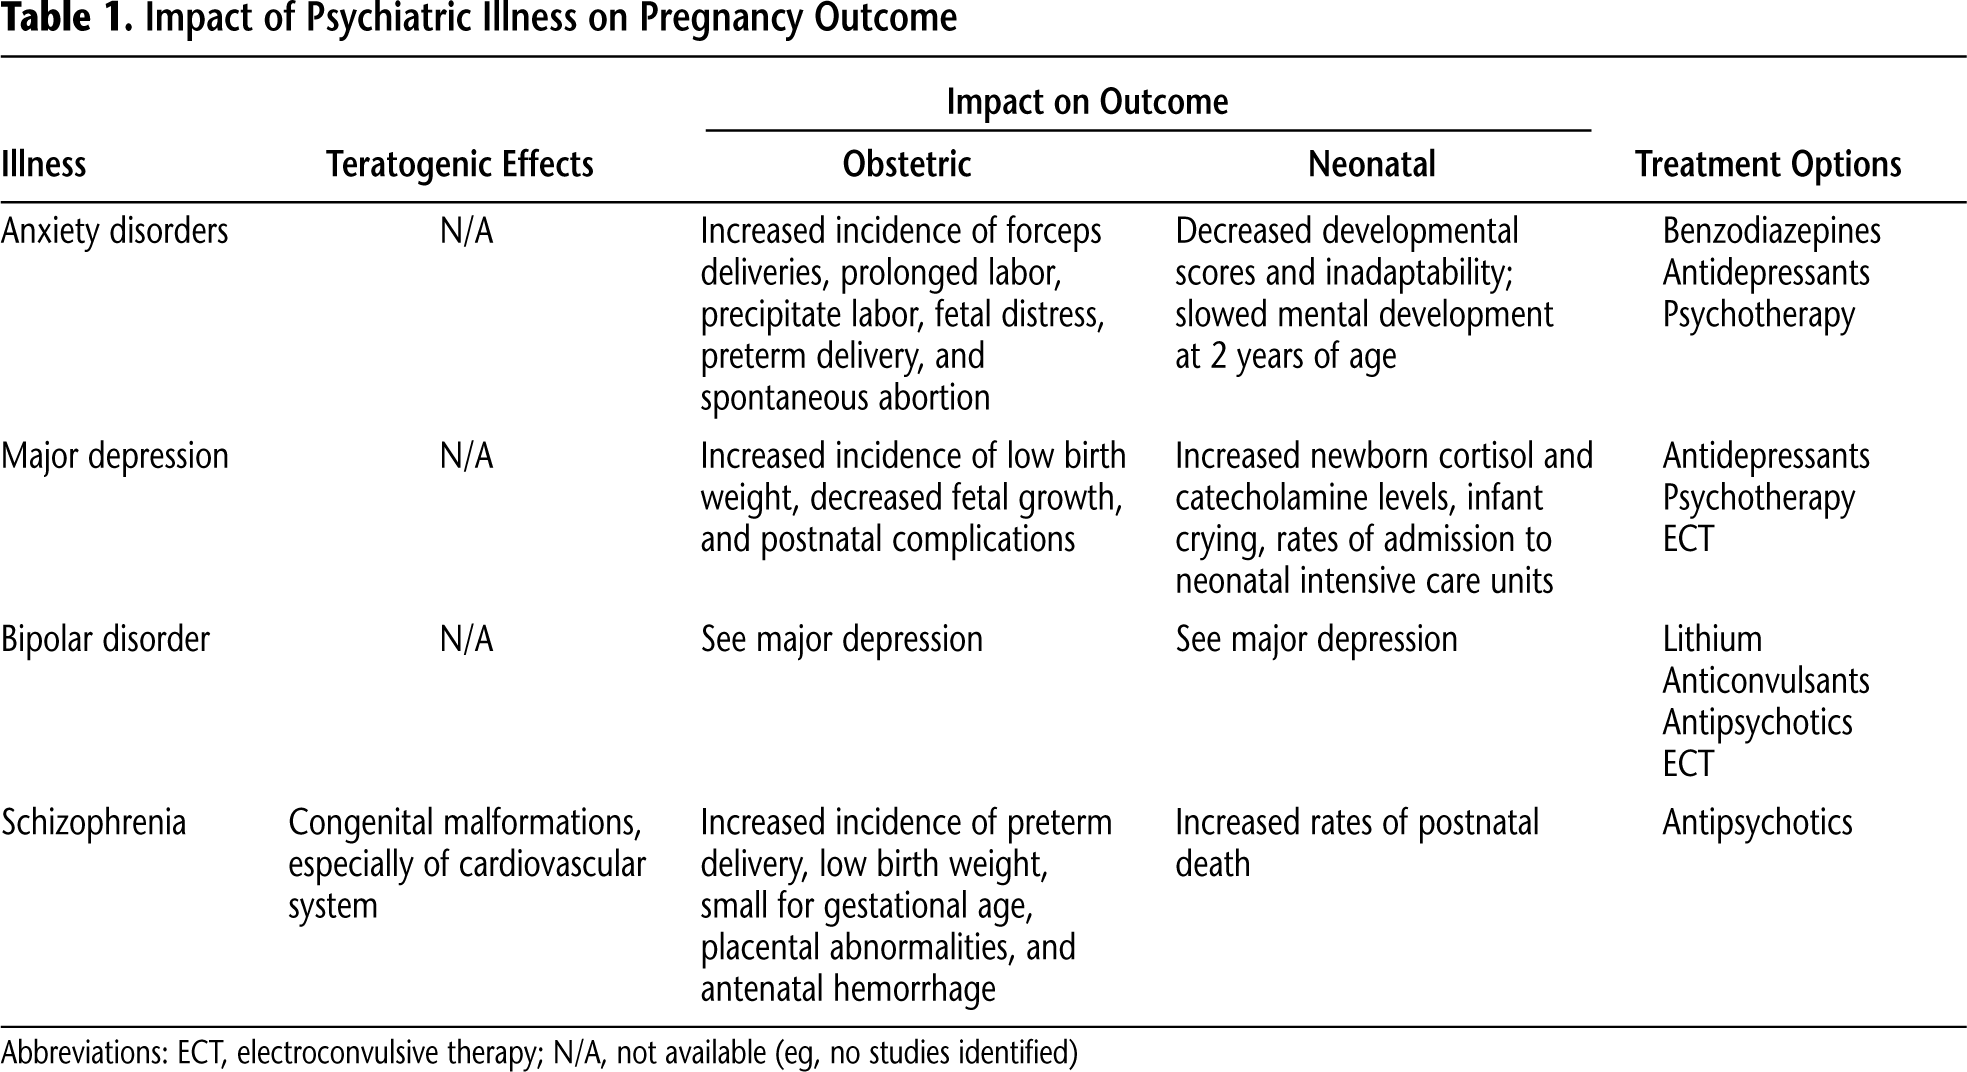 Table 1. Impact of Psychiatric Illness on Pregnancy Outcome